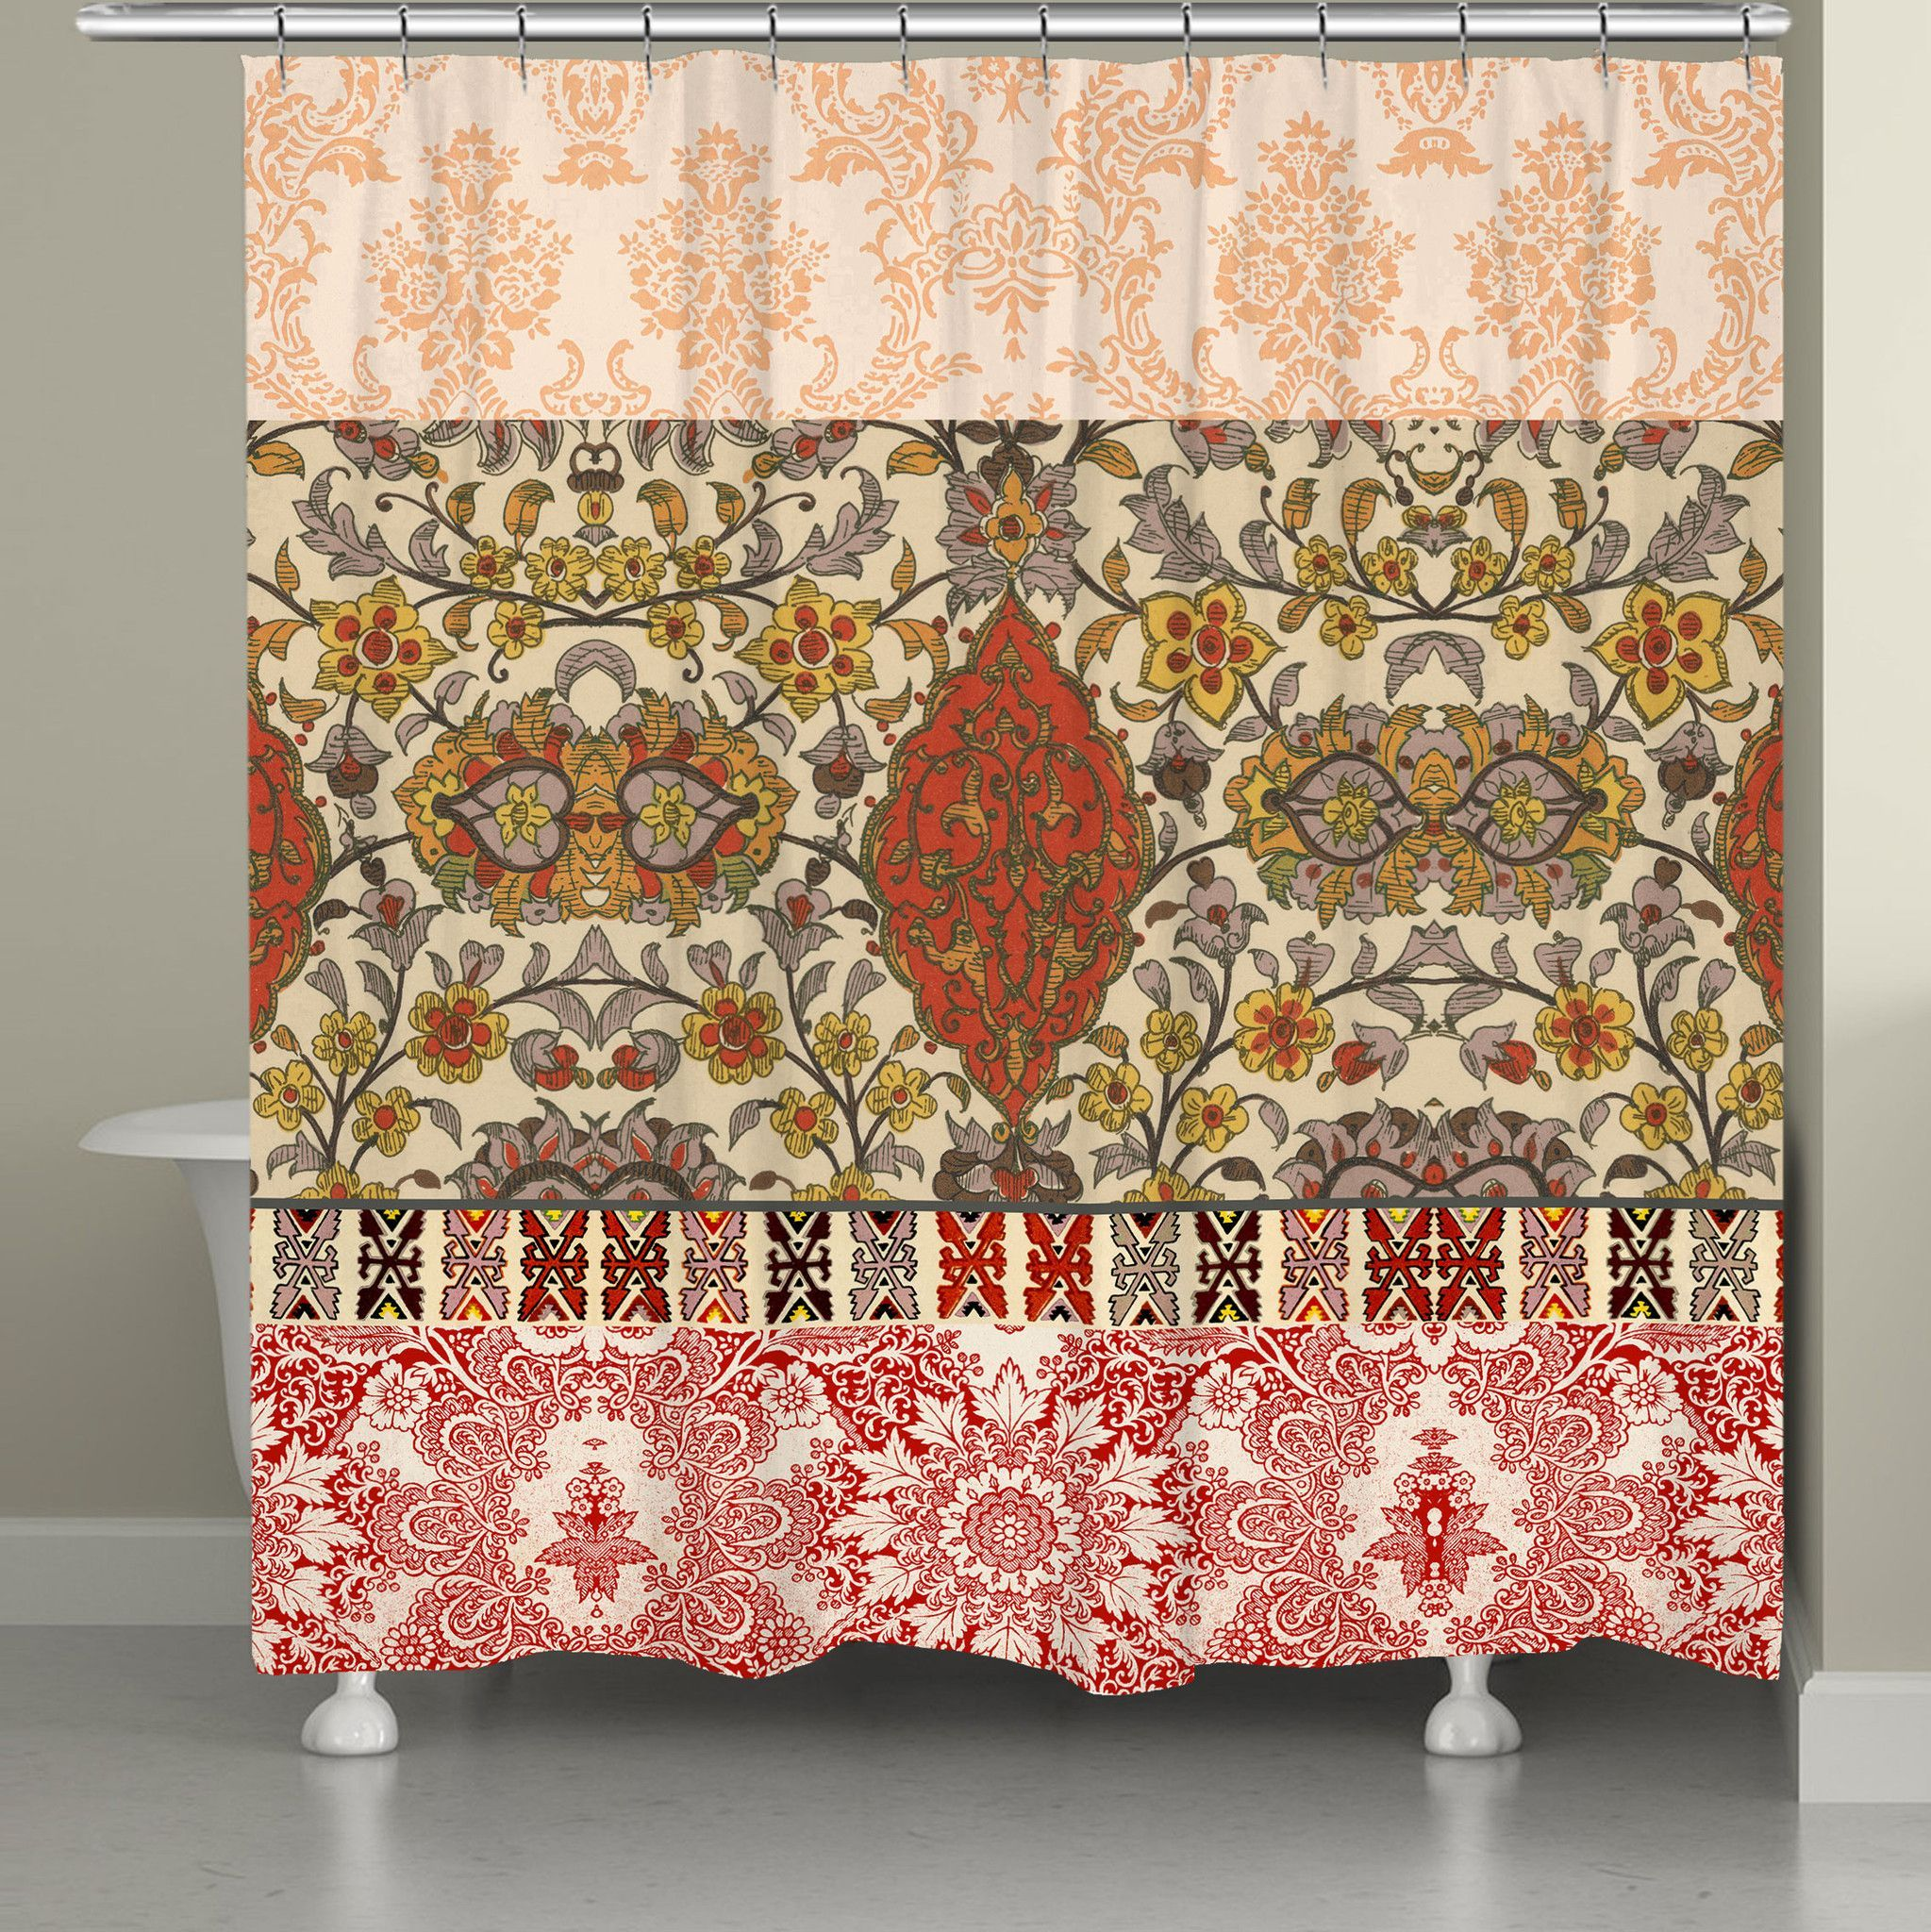 Red Spice Bohemian Tapestry Shower Curtain In 2020 Colorful